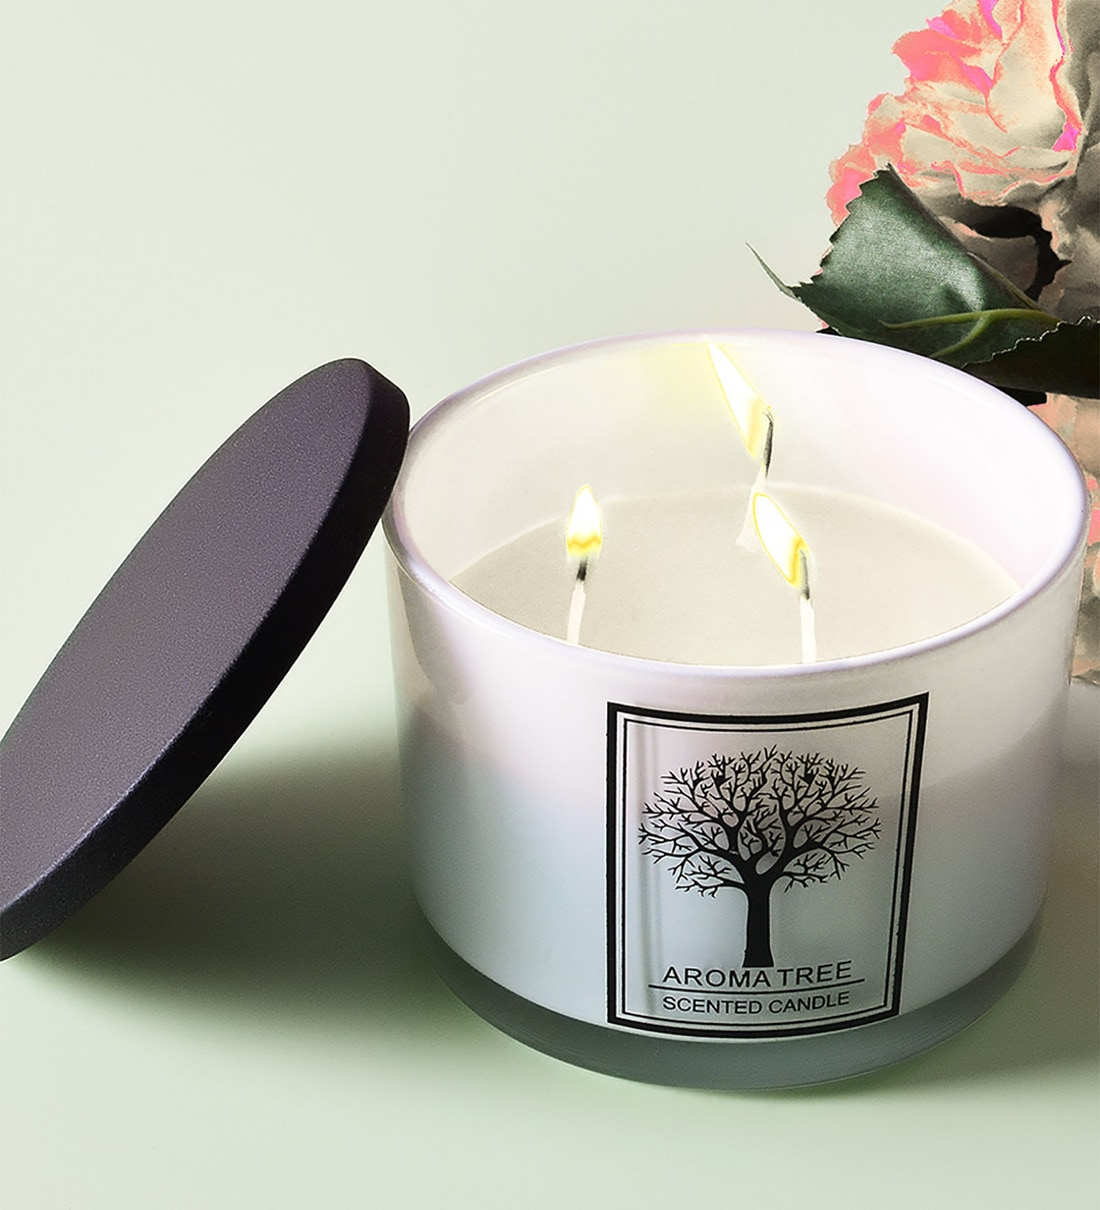 Buy White Vanilla Scented Candle By Archies Online Scented Candles Scented Candles Lamps Lighting Pepperfry Product